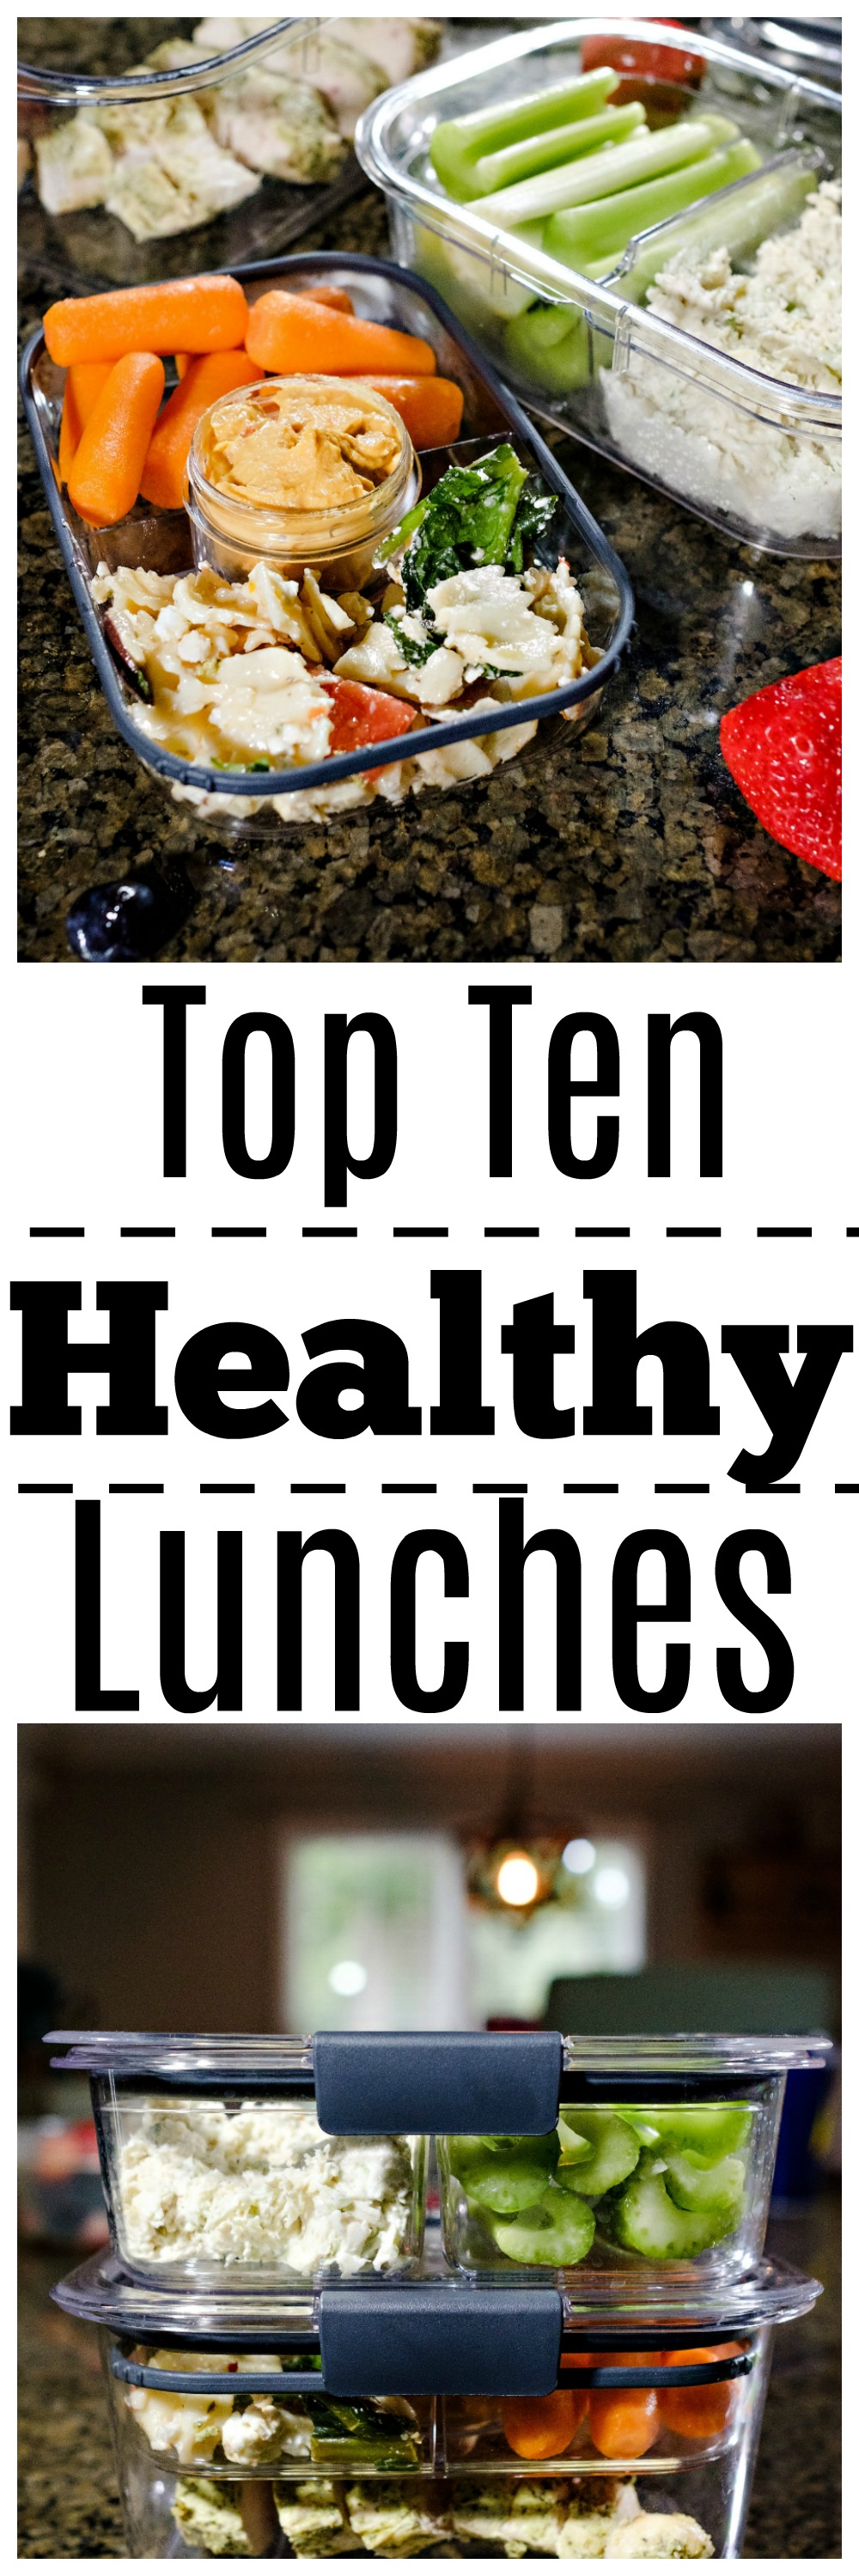 toptenhealthylunches - Top Ten Healthy Lunches by Atlanta fitness blogger Happily Hughes